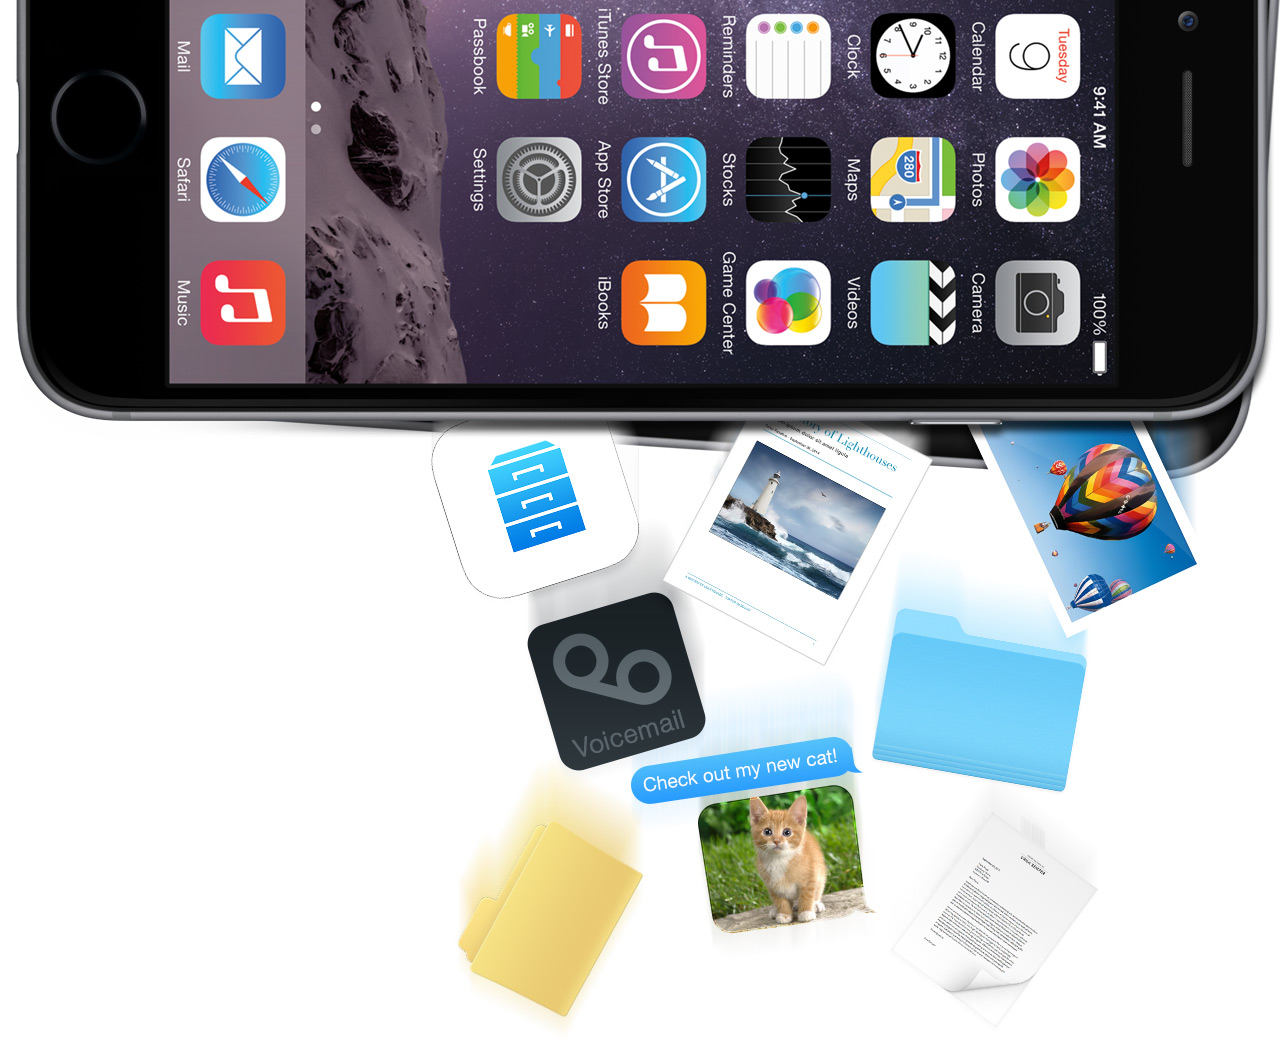 access iphone files on computer